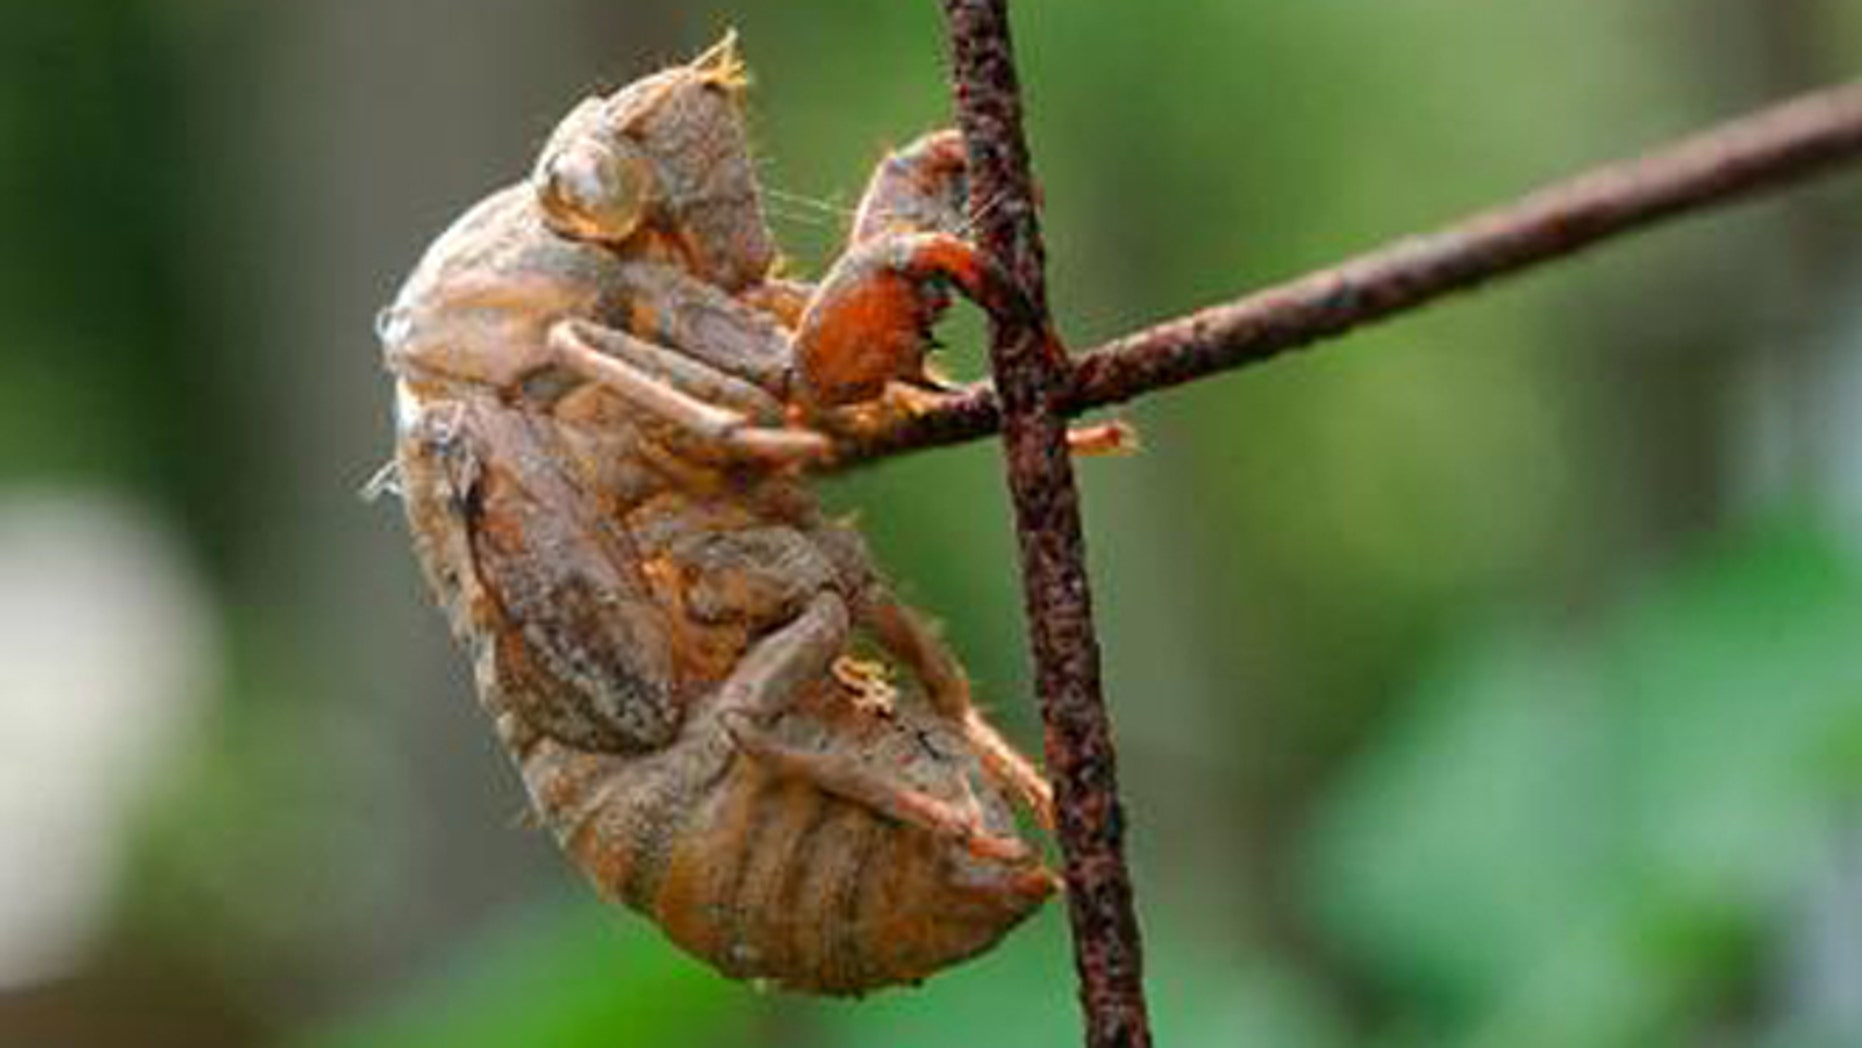 A cicada, big, noisy bugs that climb out of the earth about every decade and a half.